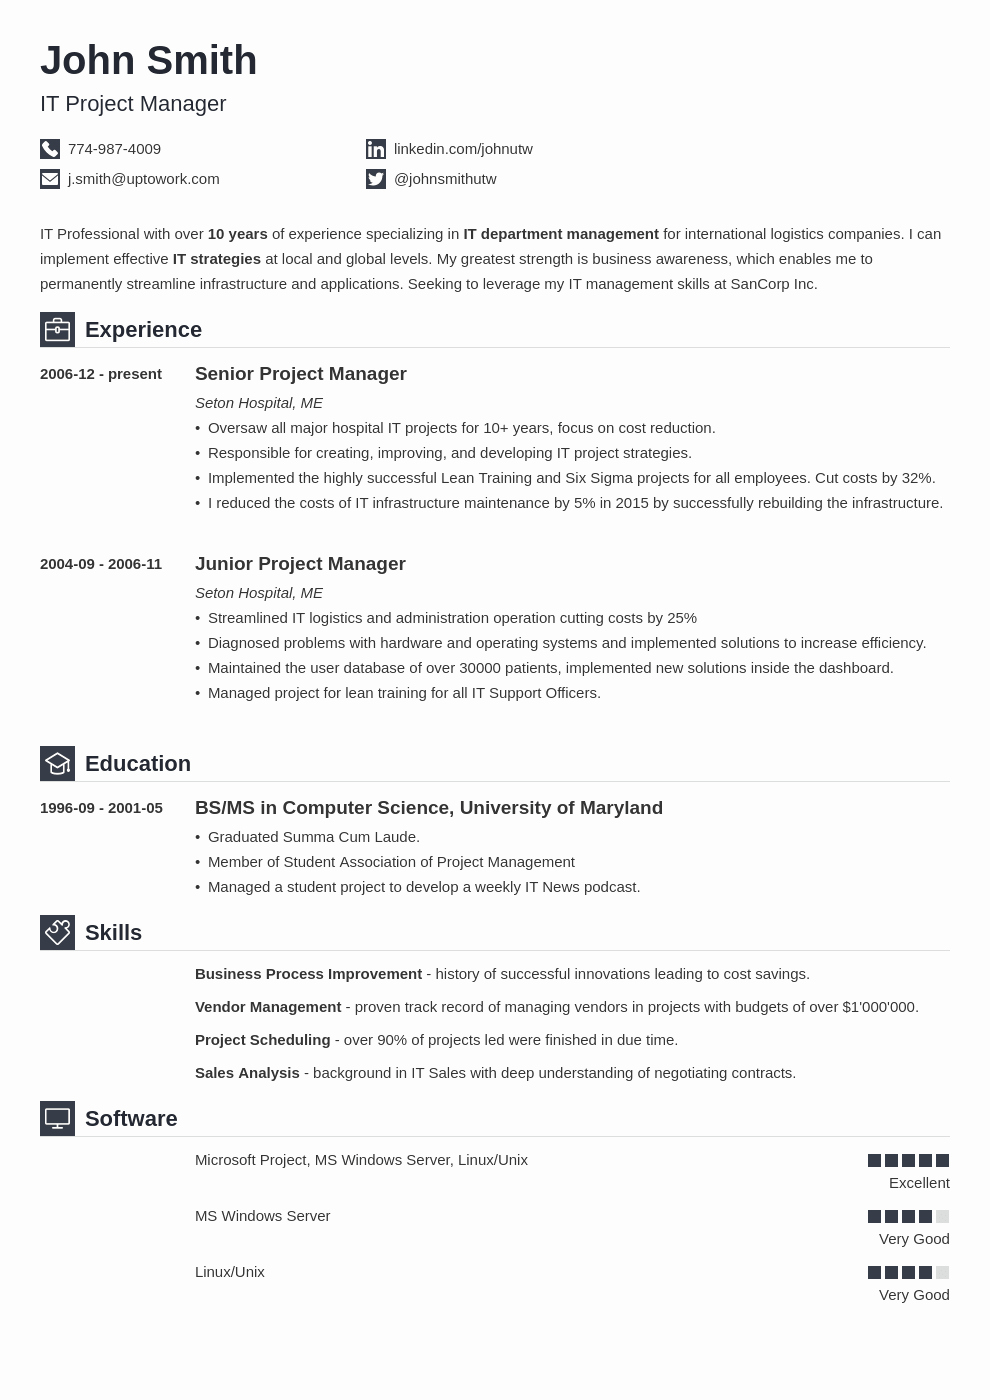 Resume with Picture Template New 20 Resume Templates [download] Create Your Resume In 5